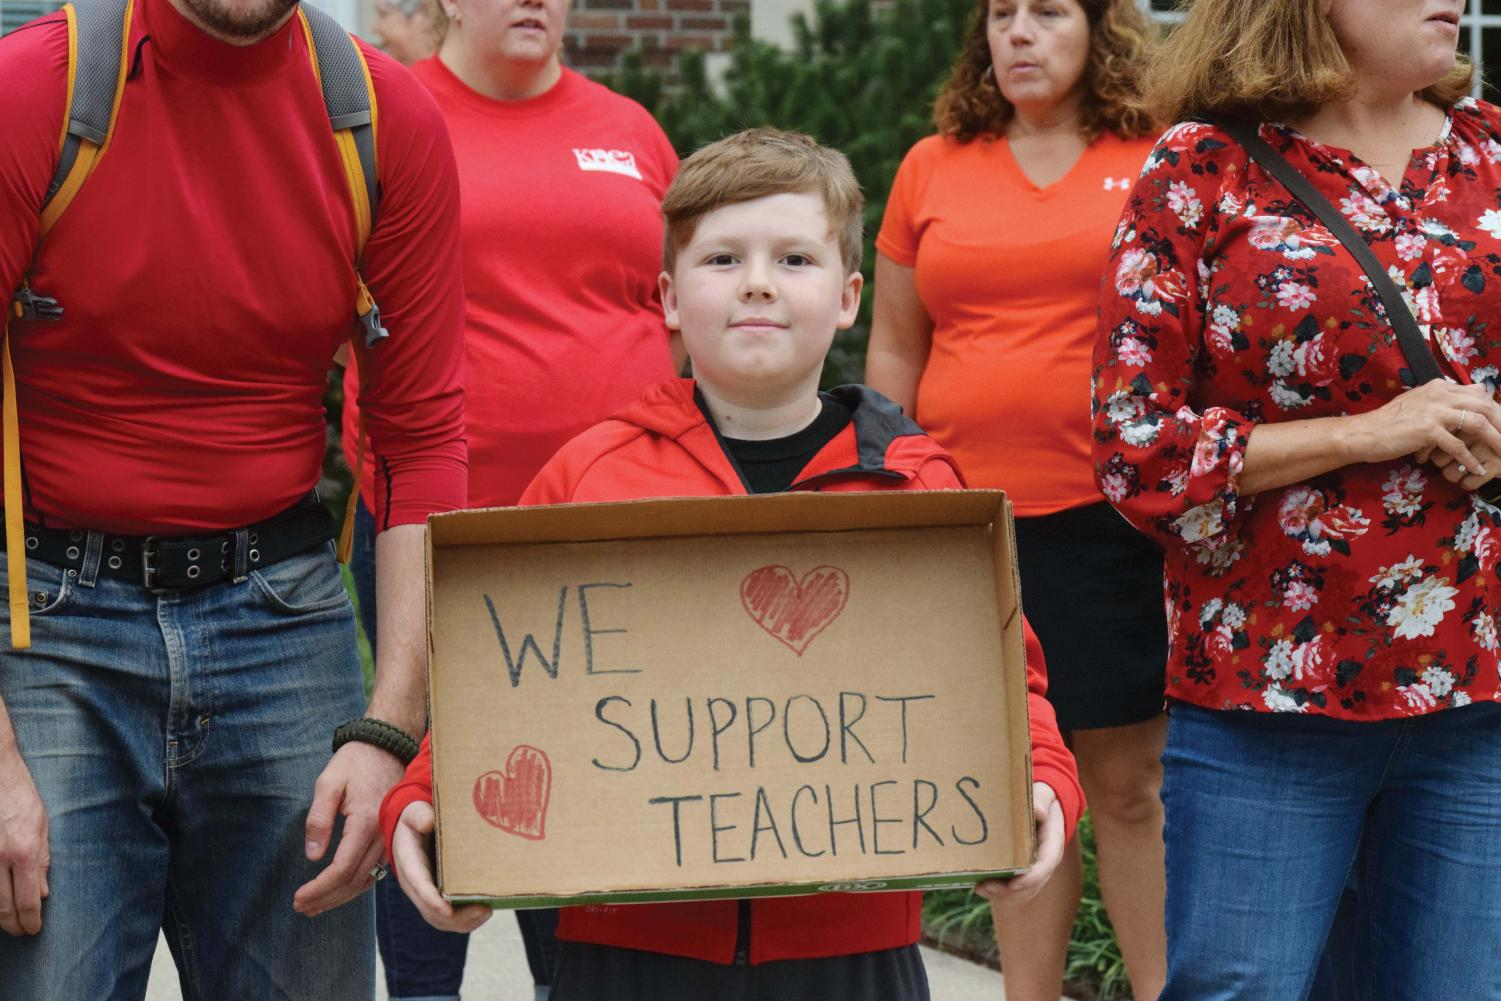 """Supporting the cause, community members of all ages gather to support teachers on Sept. 6 outside Liberty Memorial Middle School. Parents, teachers and students from across the district stood together on what was supposed to be Liberty's open house night, a night teachers aren't specifically paid to attend. """"It's a hard place to be when you're a teacher, because they care so much about our kids, their jobs and their professions and doing what's right,"""" said Jenny Skillman, the leader of the initiative."""